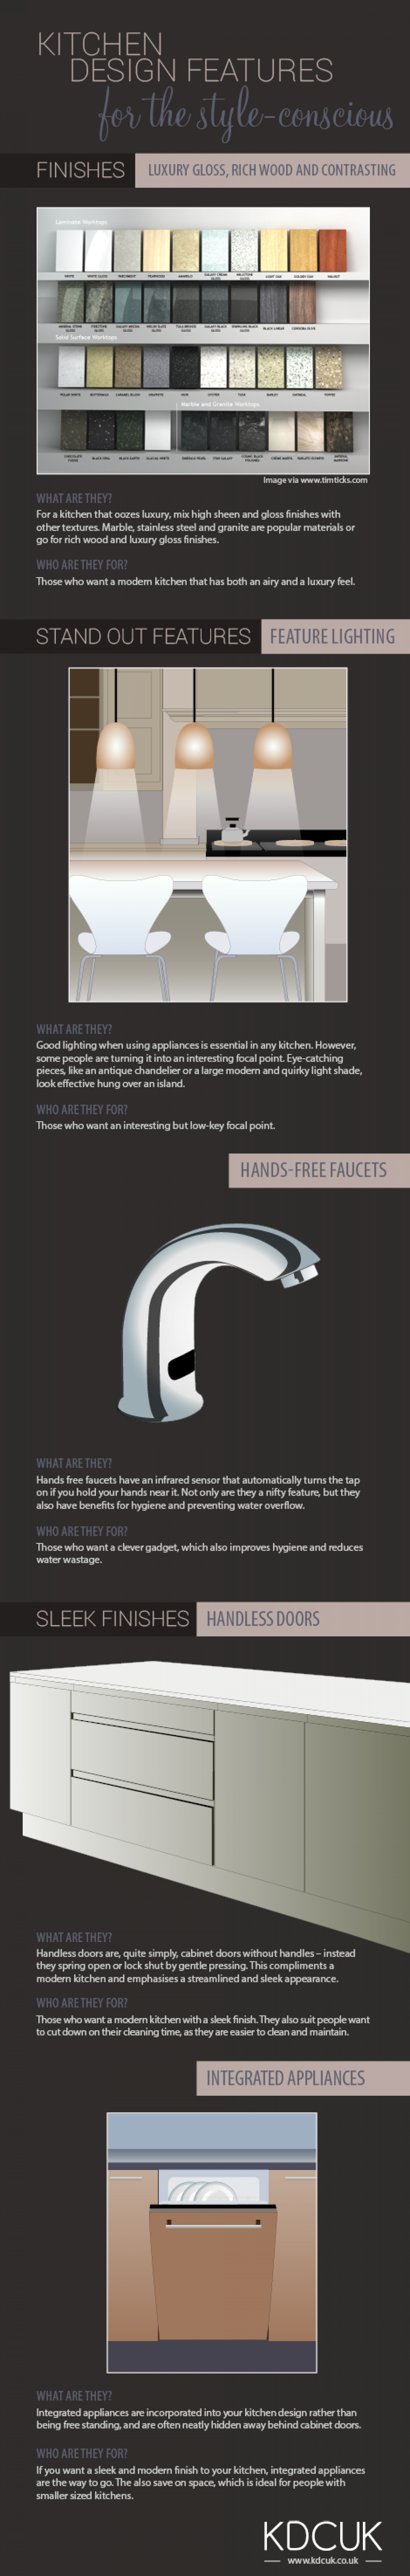 Kitchen Design Touches for the Style Conscious Infographic